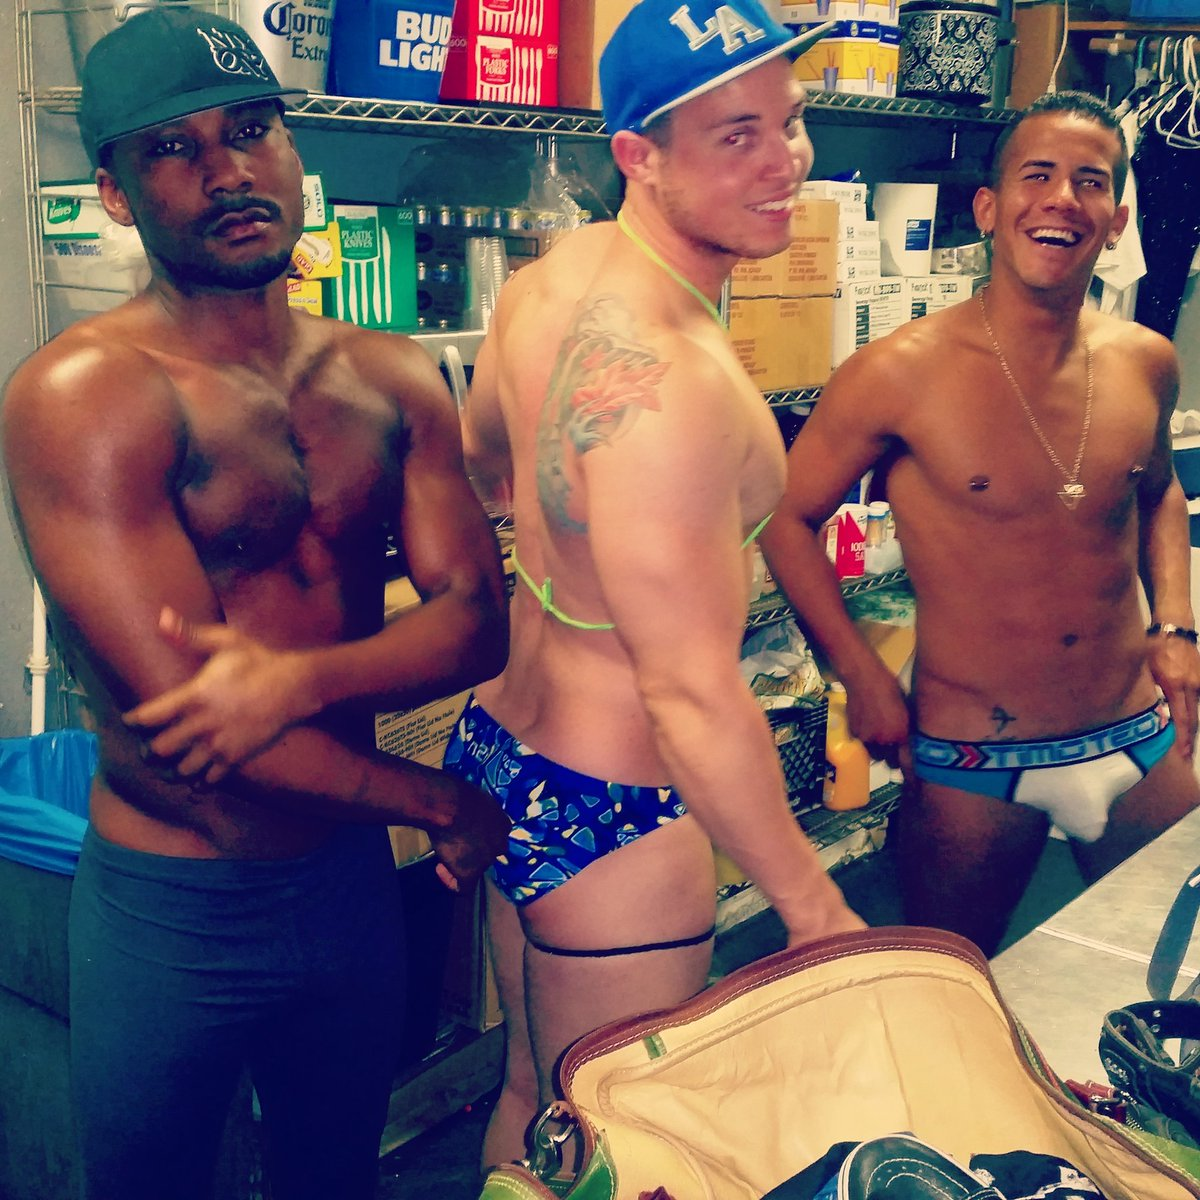 Gay party pics hot male underwear photo